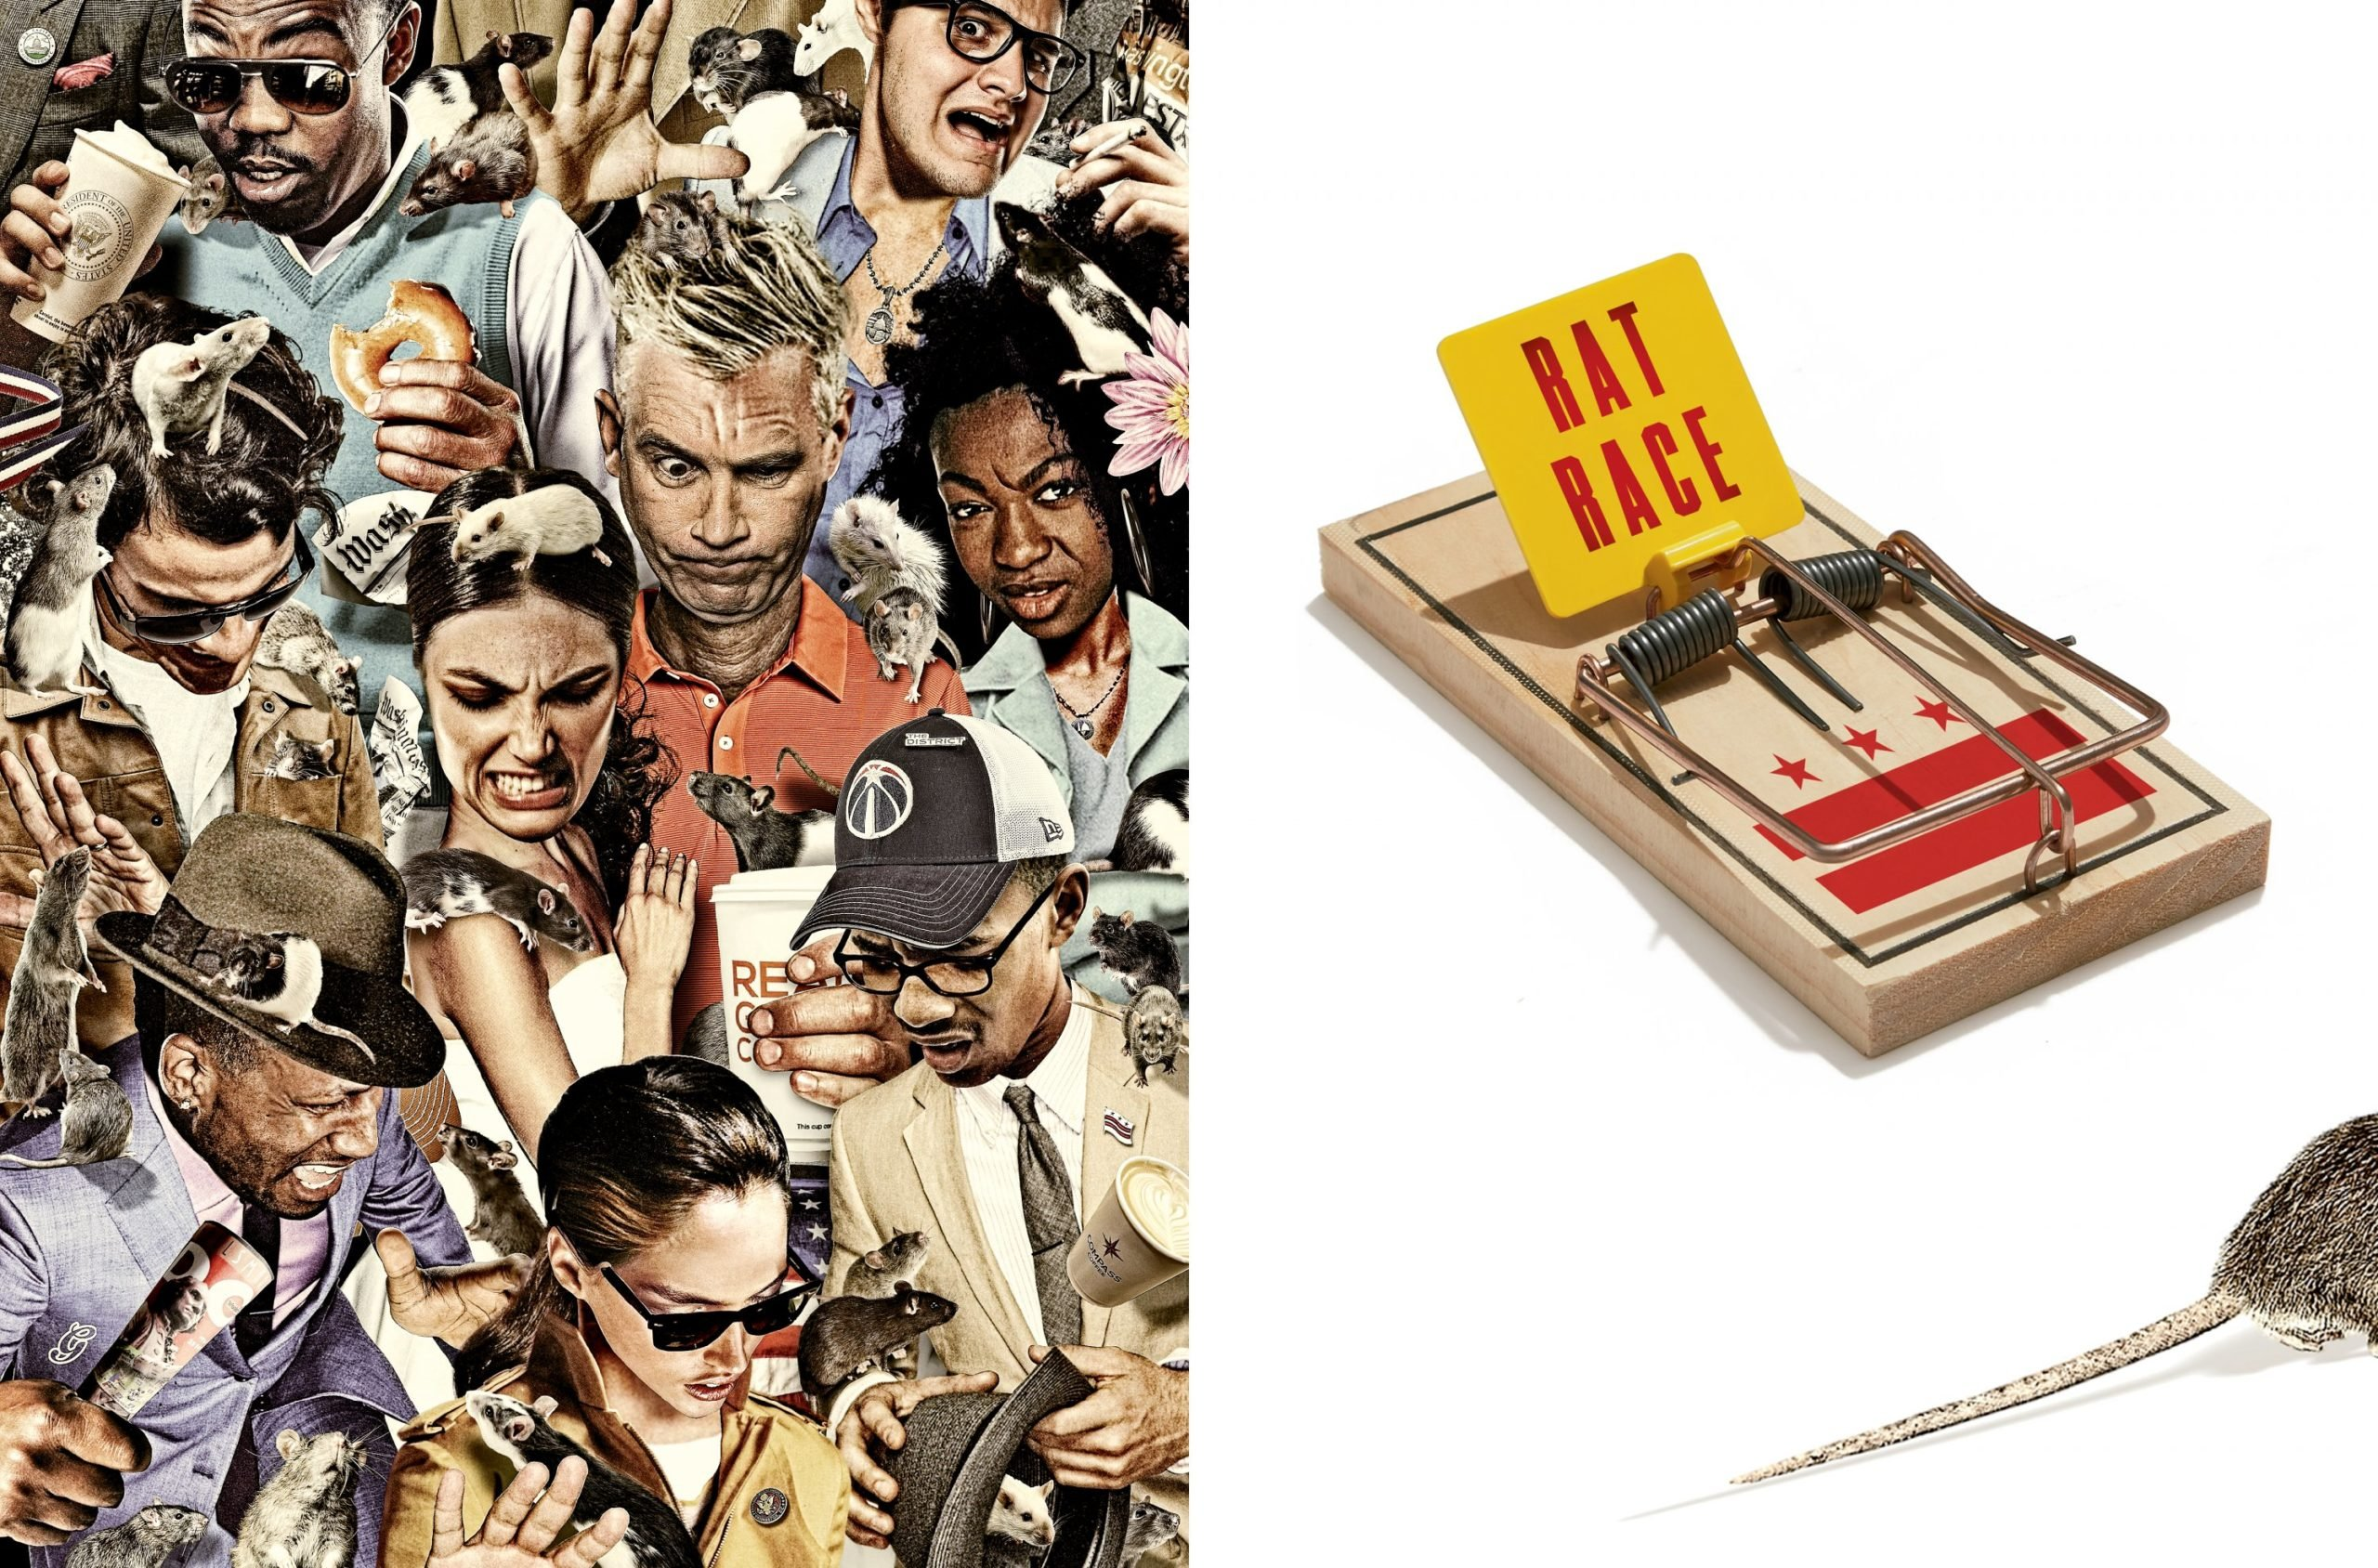 Photo-illustration by Eddie Guy. Rat trap photograph by Jeff Elkins.